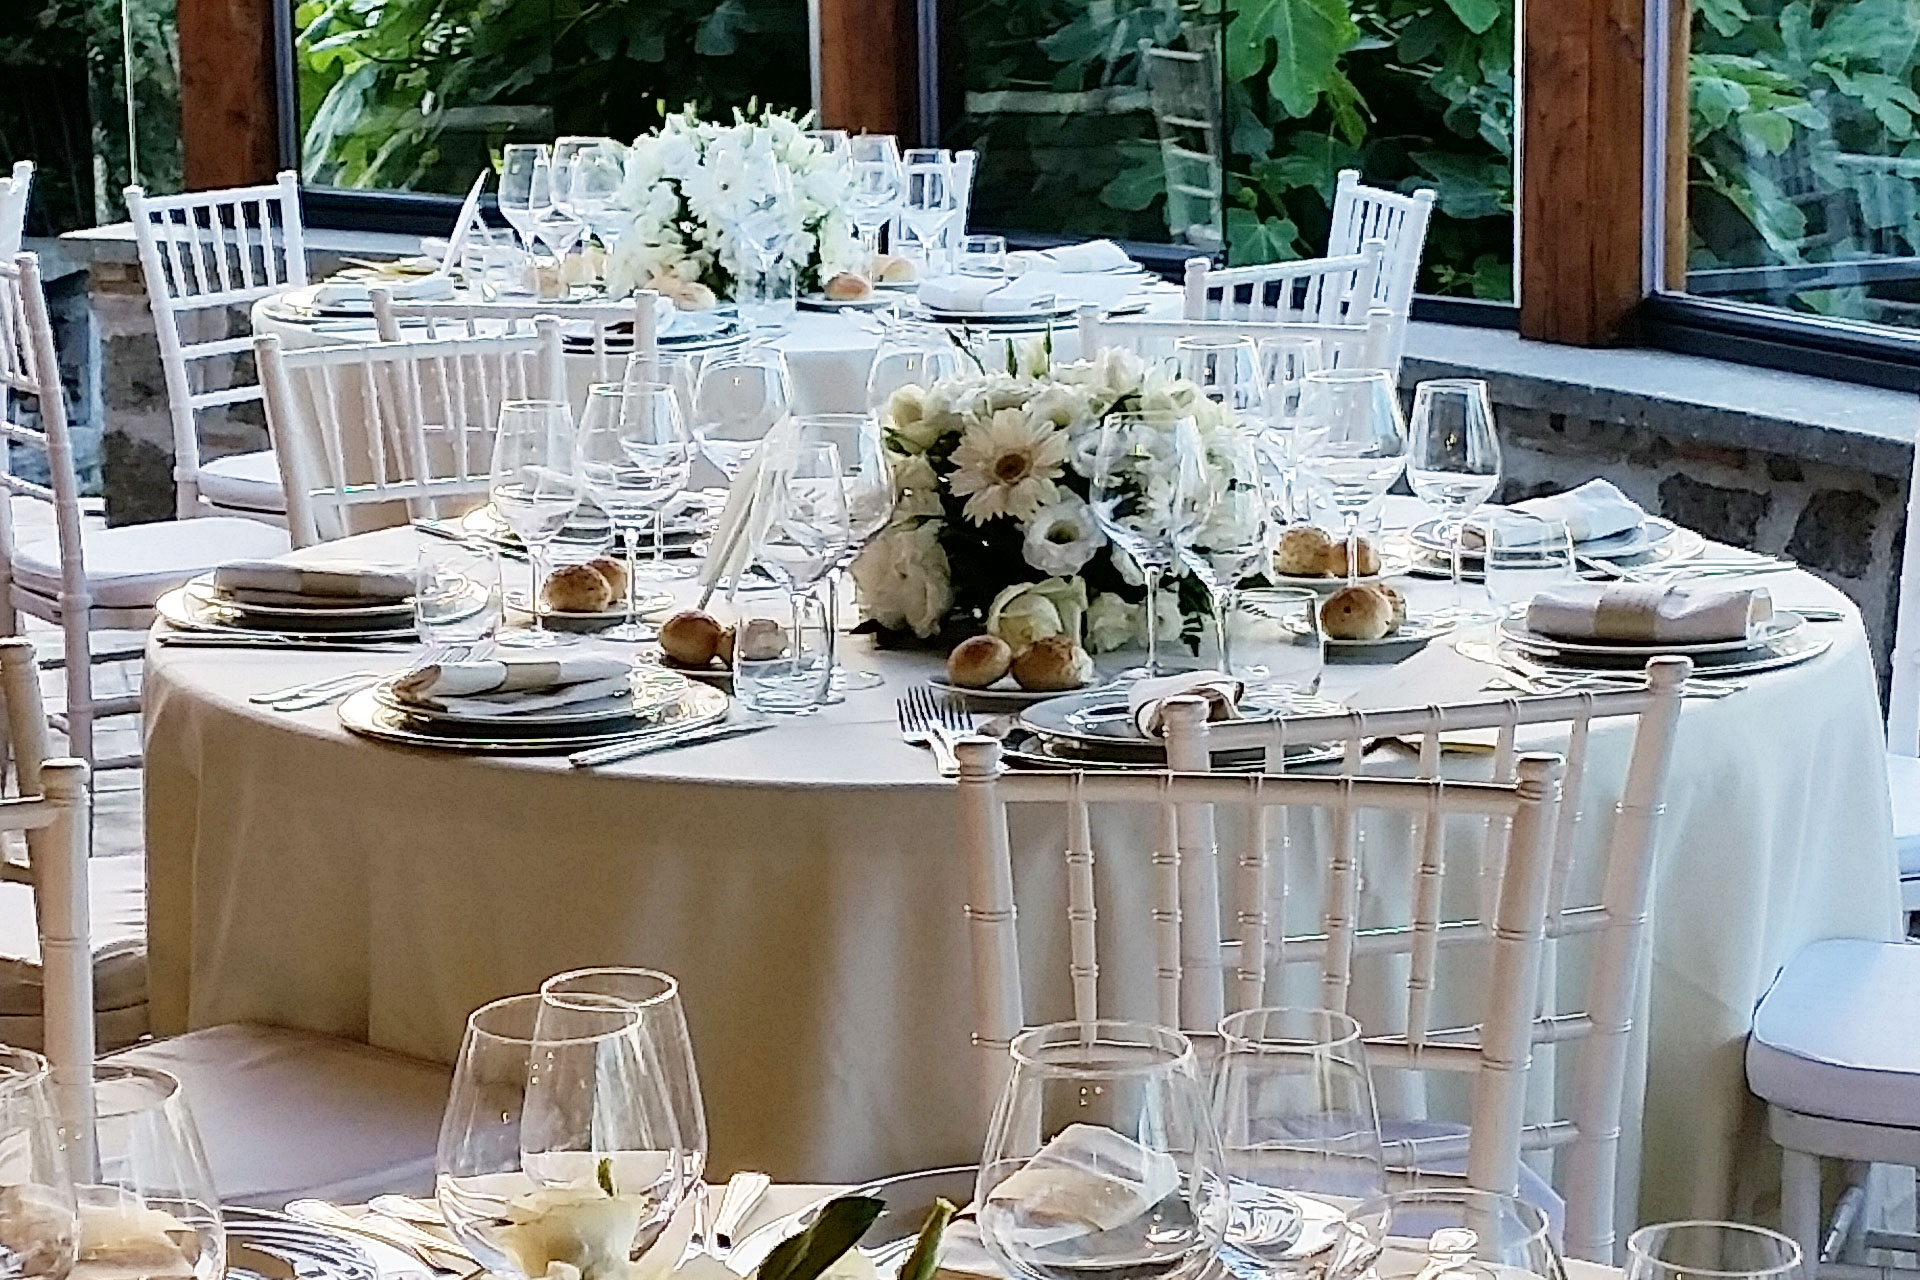 Matrimonio Country Chic Verona : Matrimonio country chic wn regardsdefemmes